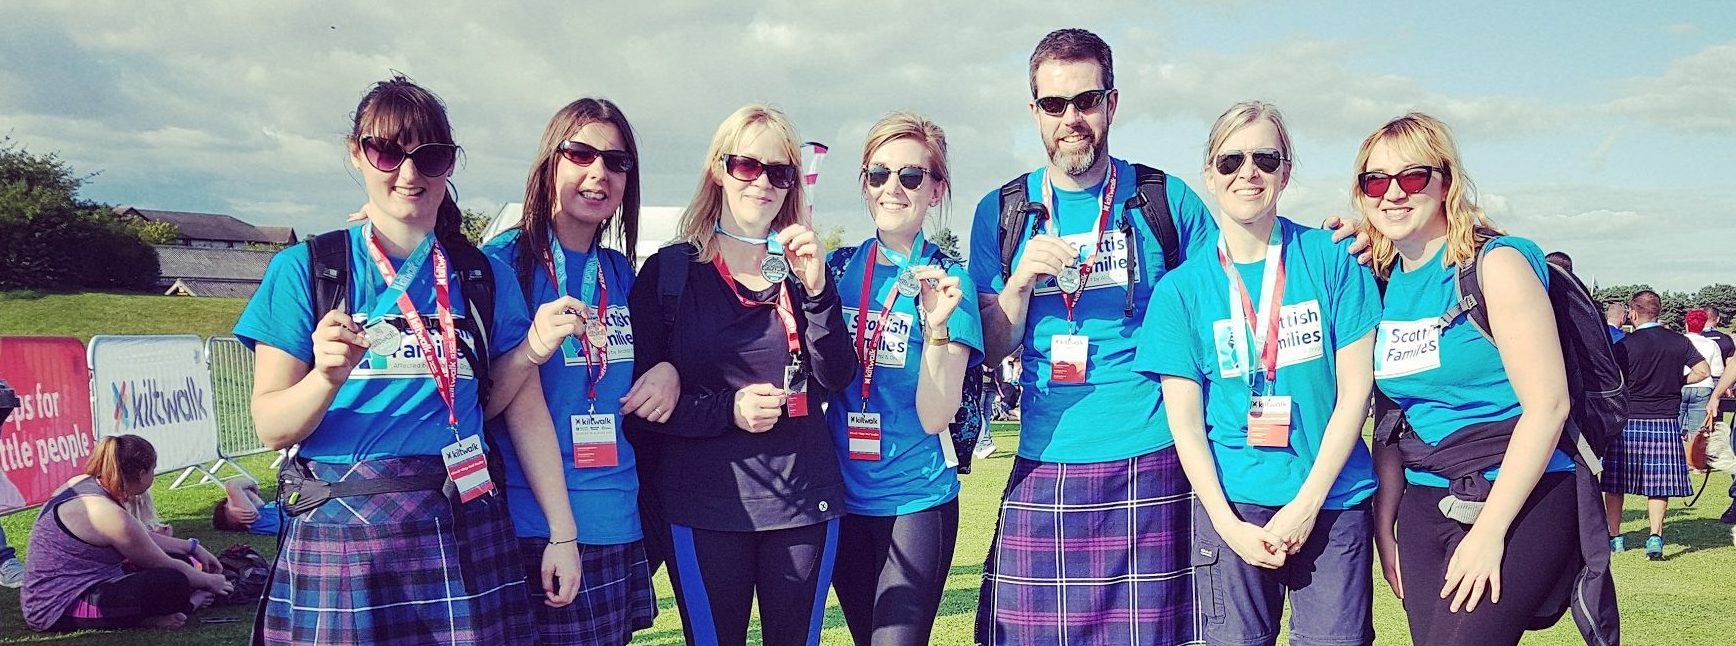 A group of men and women with their medals for finishing the Dundee Kiltwalk 2017